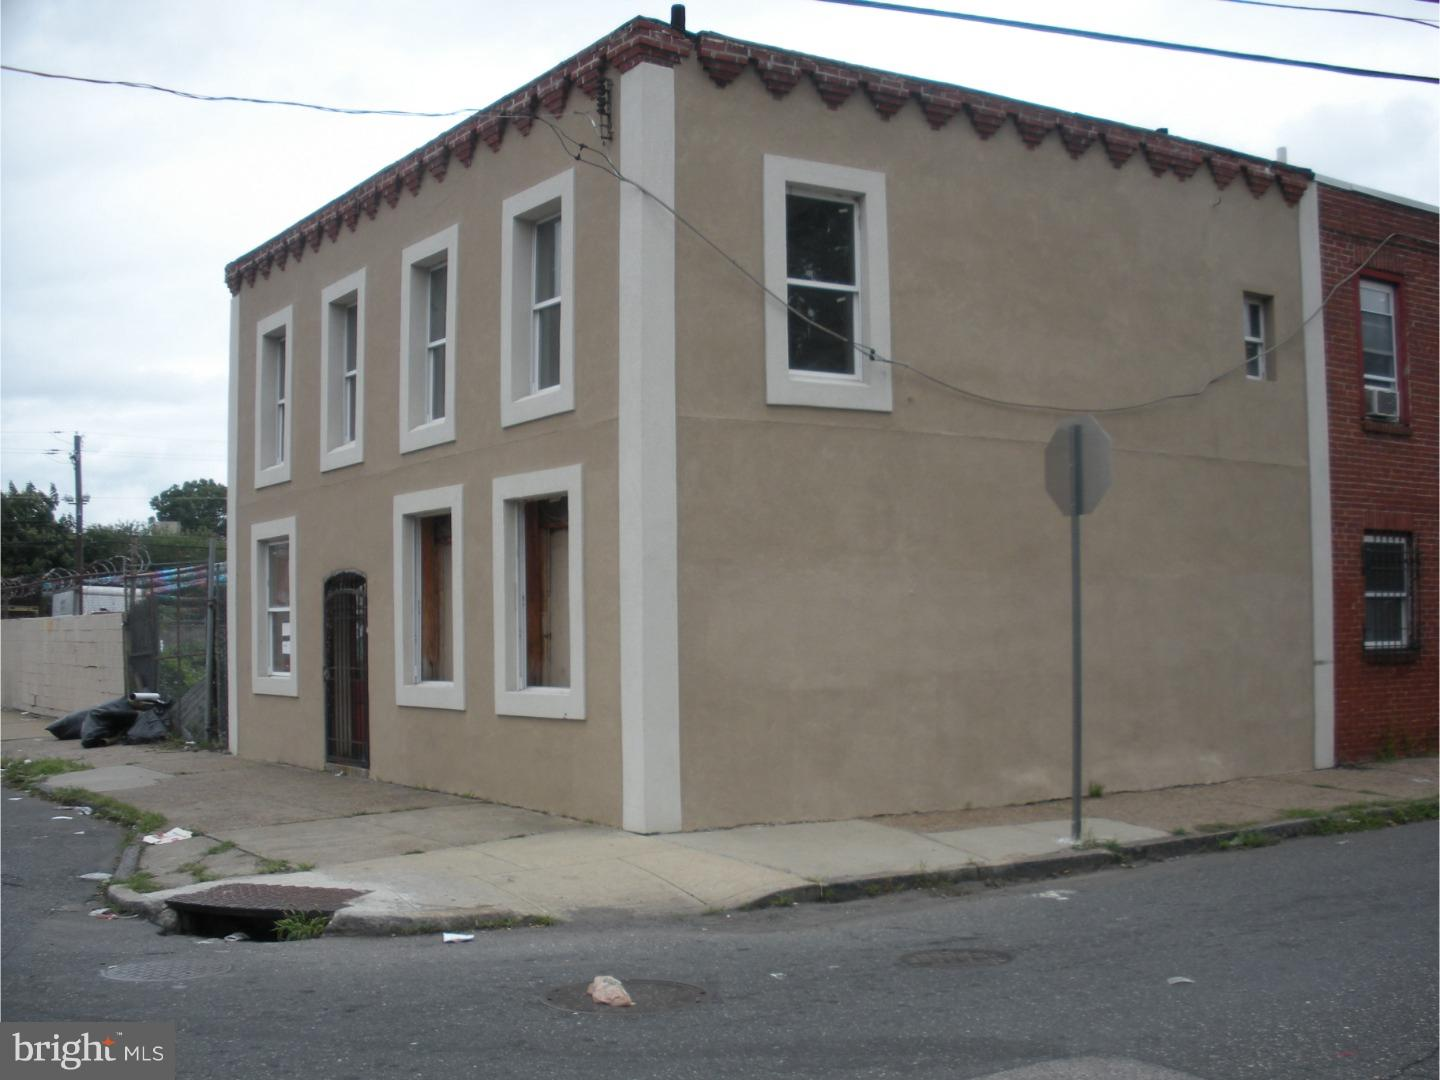 2043 CHURCH STREET, PHILADELPHIA, PA 19124